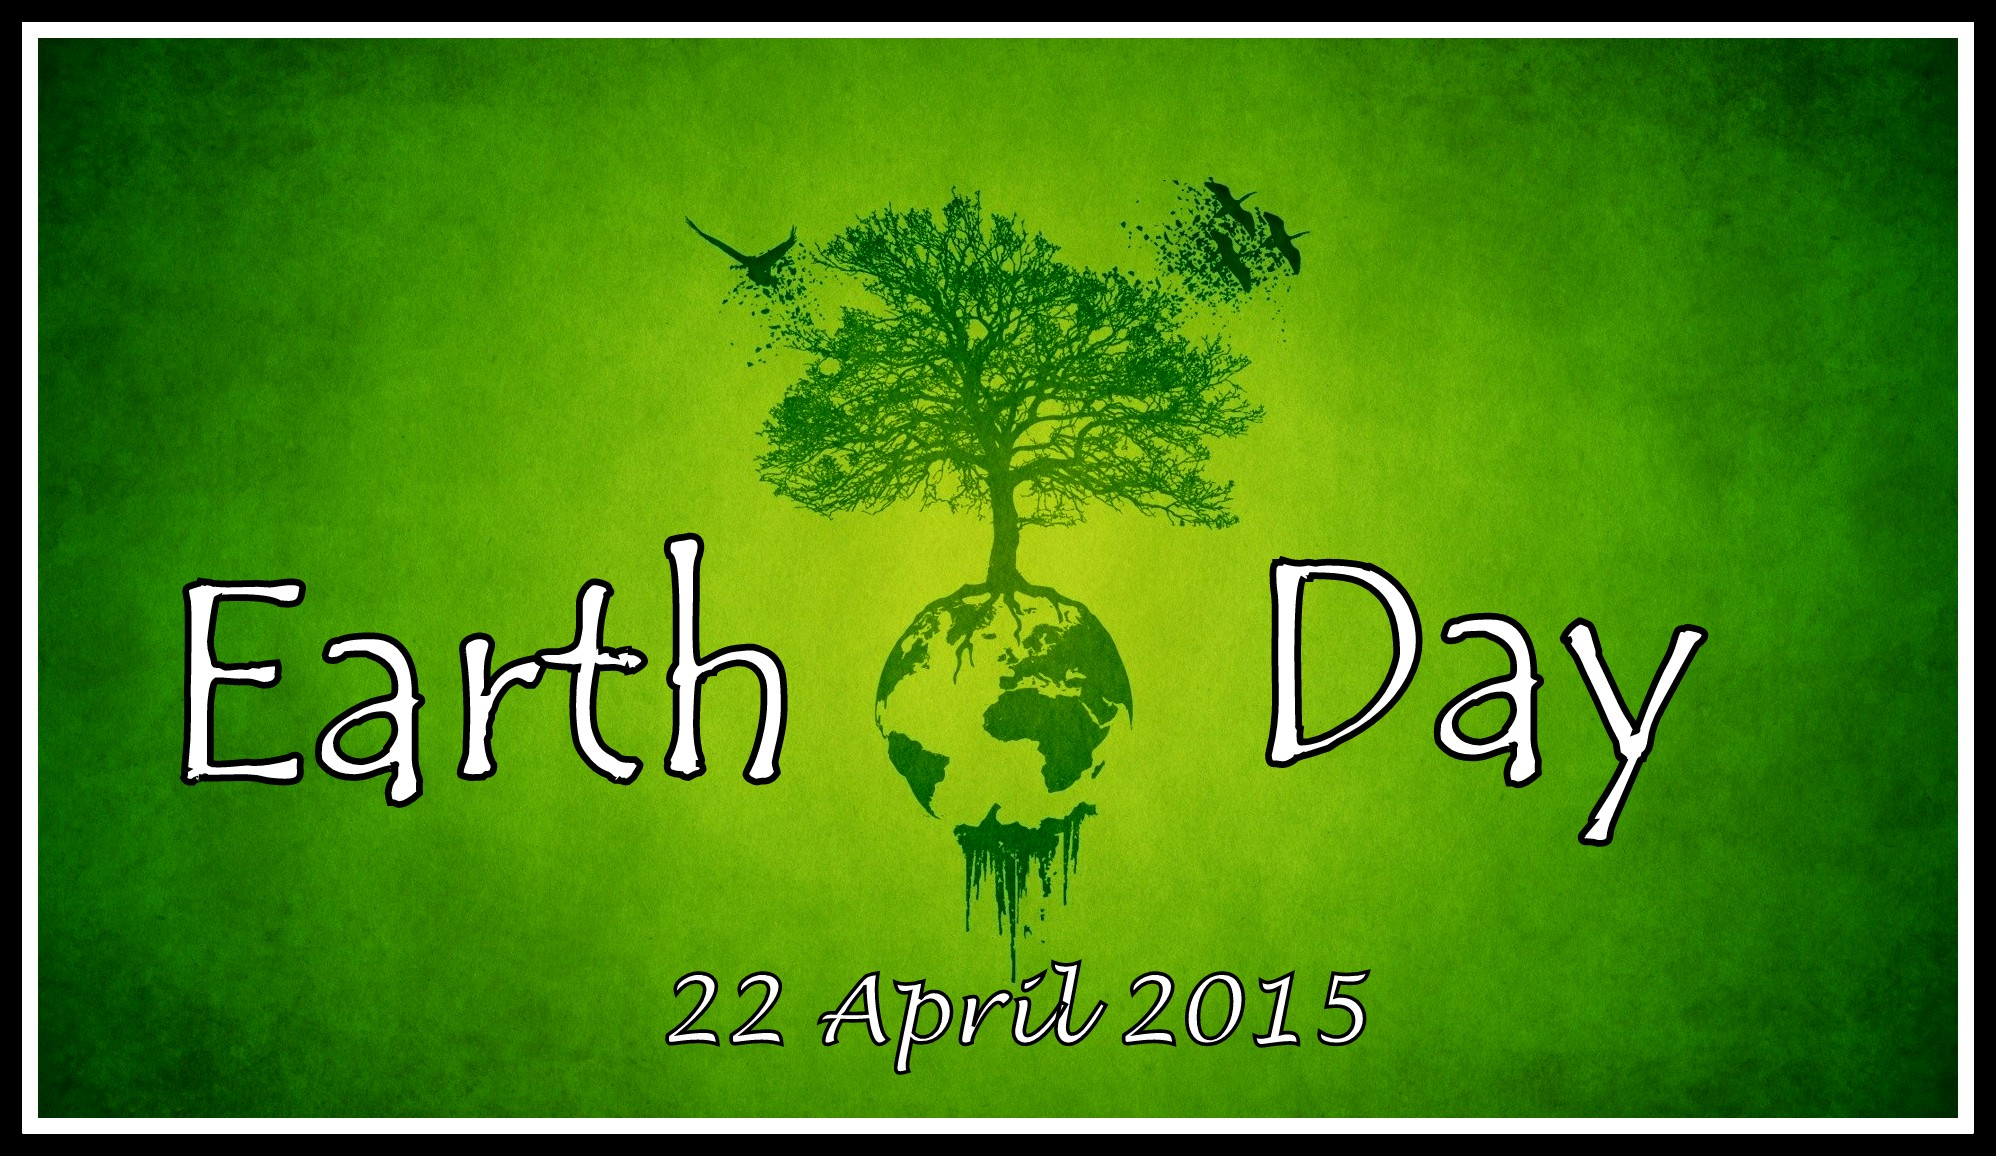 Earth Day is upon us! - Mexico News Network